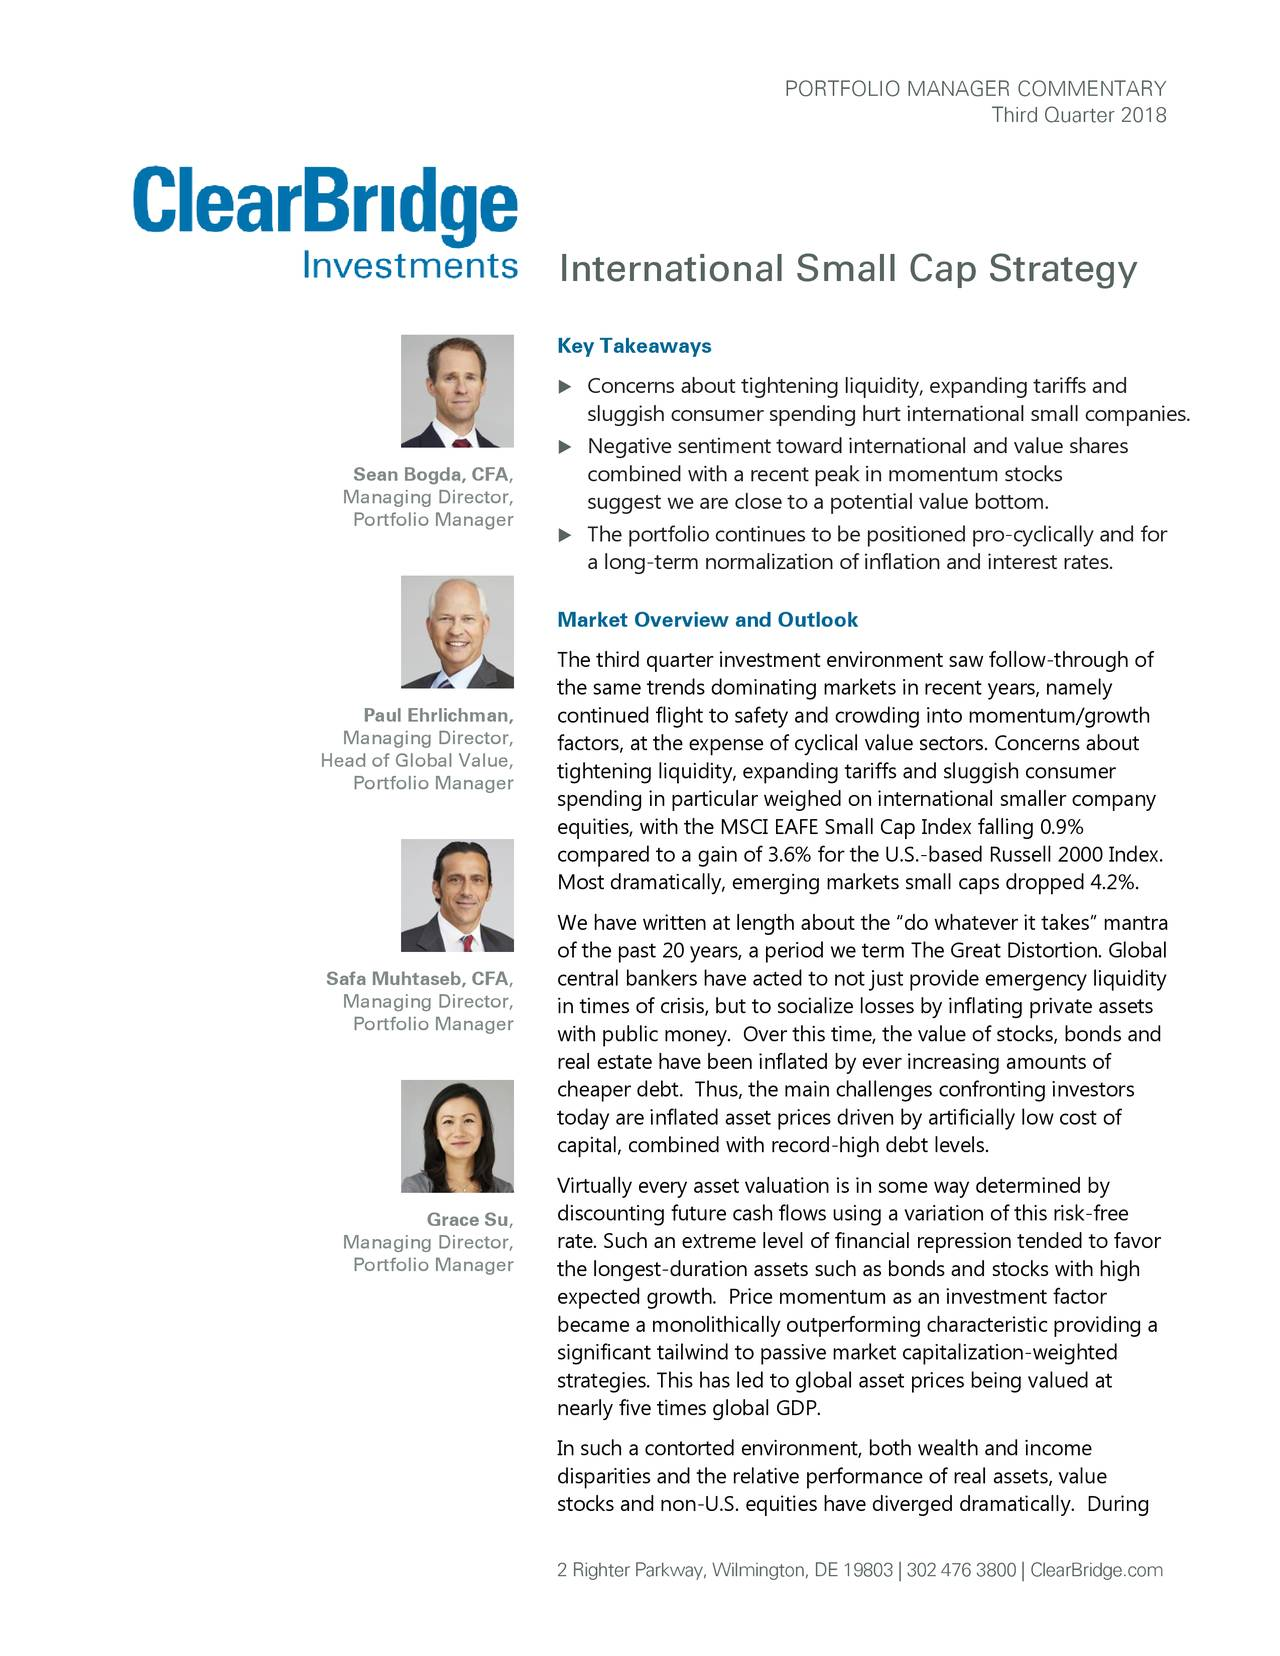 """Third Quarter 2018 International Small Cap Strategy Key Takeaways  Concerns about tightening liquidity, expanding tariffs and sluggish consumer spending hurt international small companies.  Negative sentiment toward international and value shares Sean Bogda, CFA, combined with a recent peak in momentum stocks Managing Director, suggest we are close to a potential value bottom. Portfolio Manager  The portfolio continues to be positioned pro -cyclically and for a long-term normalization of inflation and interest rates. Market Overview and Outlook The third quarter investment environment saw follow-through of the same trends dominating markets in recent years, namely Paul Ehrlichman, continued flight to safety and crowding into momentum/growth Managing Director, factors, at the expense of cyclical value sectors. Concerns about Head of Global Value, Portfolio Manager tightening liquidity, expanding tariffs and sluggish consumer spending in particular weighed on international smaller company equities, with the MSCI EAFE Small Cap Index falling 0.9% compared to a gain of 3.6% for the U.S.-based Russell 2000 Index. Most dramatically, emerging markets small caps dropped 4.2%. We have written at length about the """"do whatever it takes"""" mantra of the past 20 years, a period we term The Great Distortion. Global Safa Muhtaseb, CFA, central bankers have acted to not just provide emergency liquidity Managing Director, in times of crisis, but to socialize losses by inflating private assets Portfolio Manager with public money. Over this time, the value of stocks, bonds and real estate have been inflated by ever increasing amounts of cheaper debt. Thus, the main challenges confronting investors today are inflated asset prices driven by artificially low cost of capital, combined with record-high debt levels. Virtually every asset valuation is in some way determined by Grace Su, discounting future cash flows using a variation of this risk-free Managing Director, rate. Such an extreme l"""